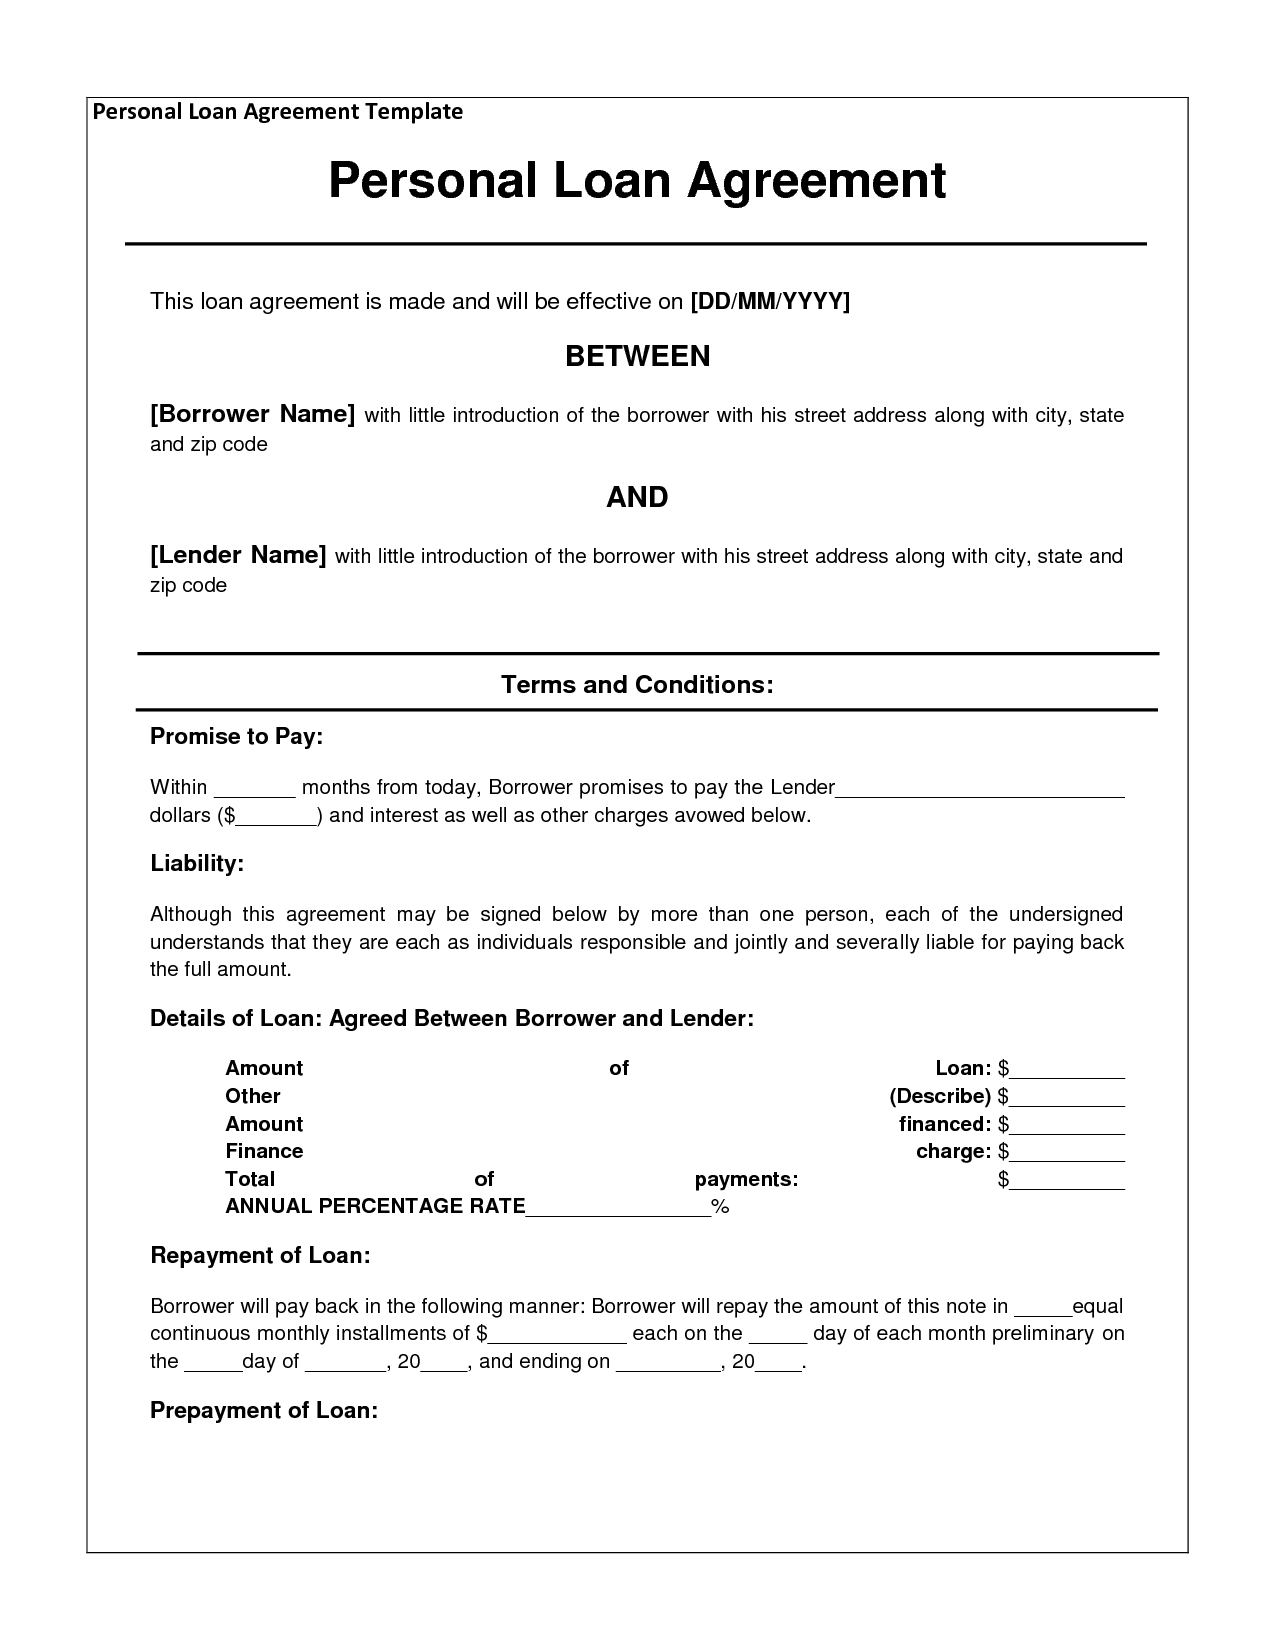 Personal Loan Payoff Letter Template - Free Personal Loan Agreement form Template $1000 Approved In 2